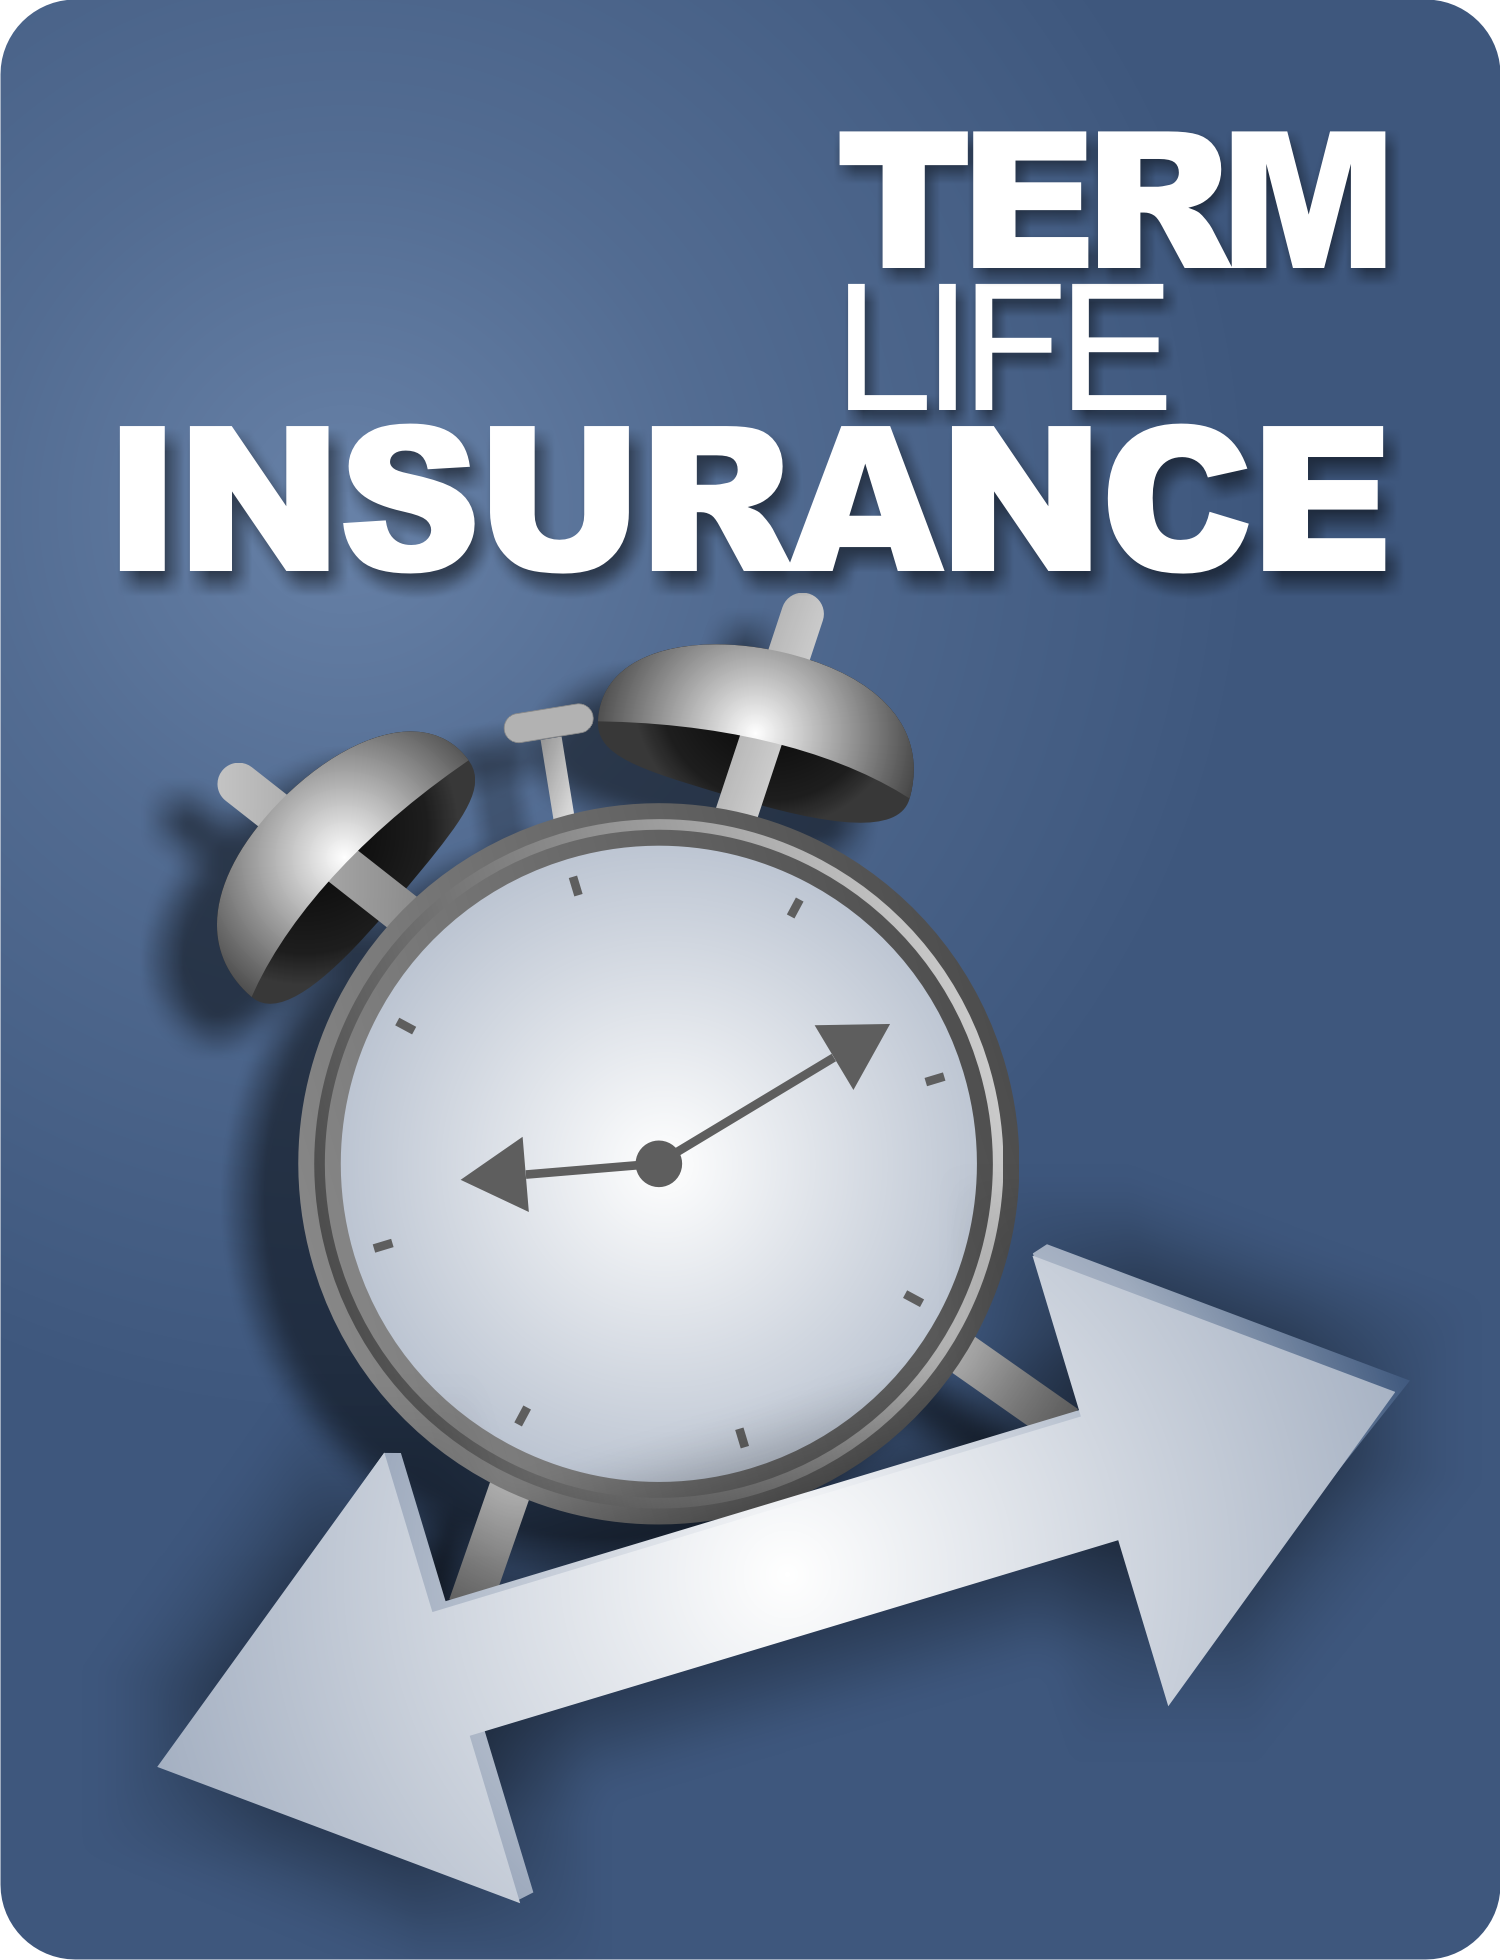 Life Insurance Rate Quotes Don't Wait Until It's Too Late Protect Your Family With A Term